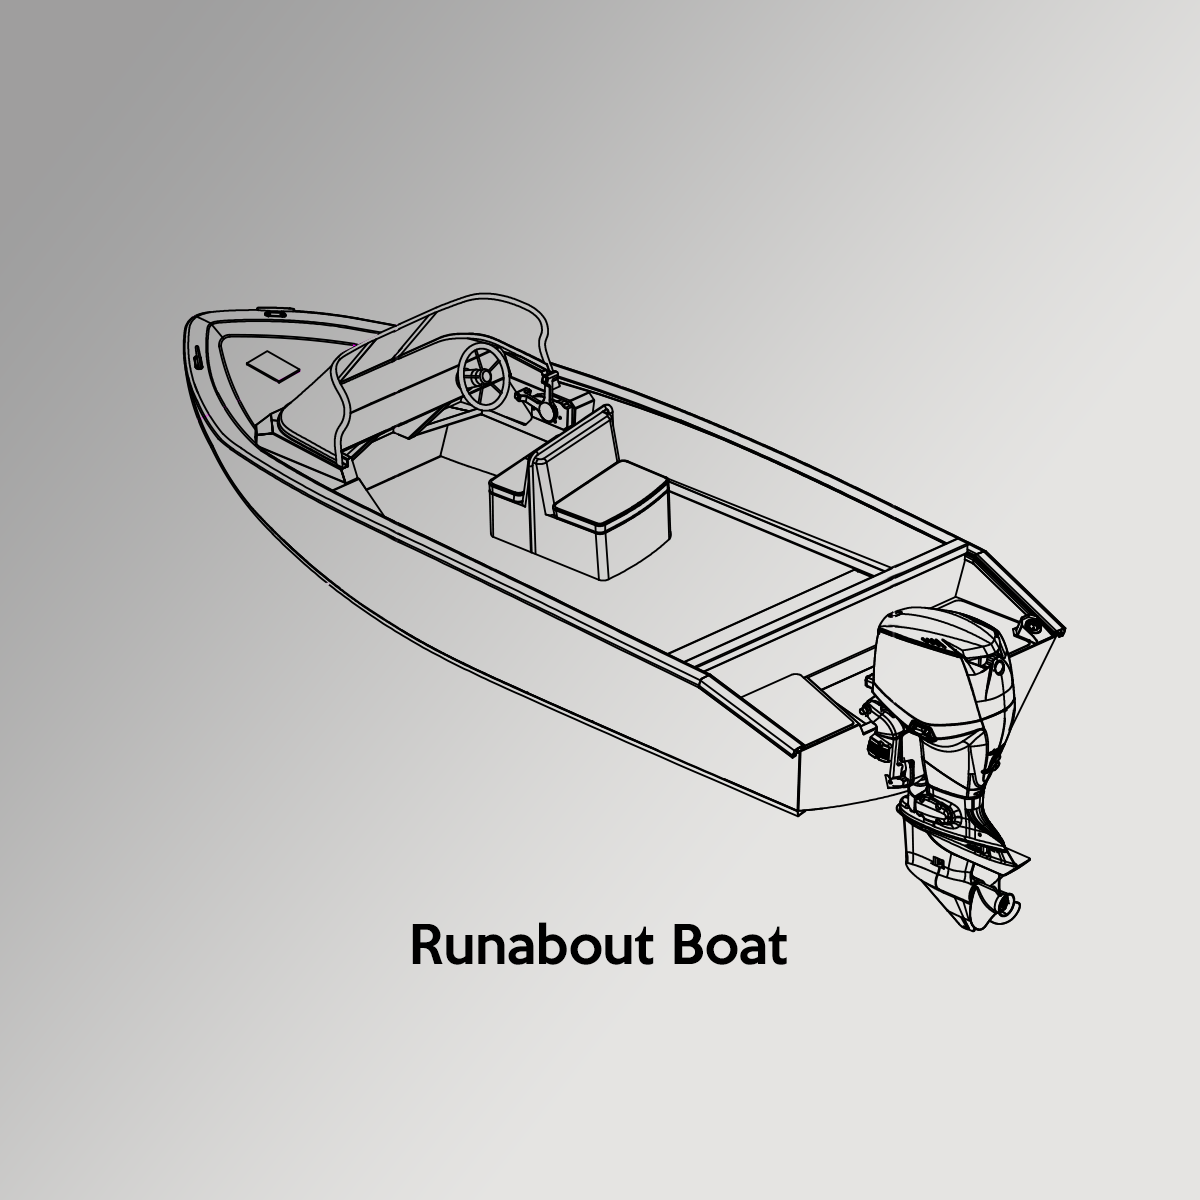 Runabout Boat Drawing